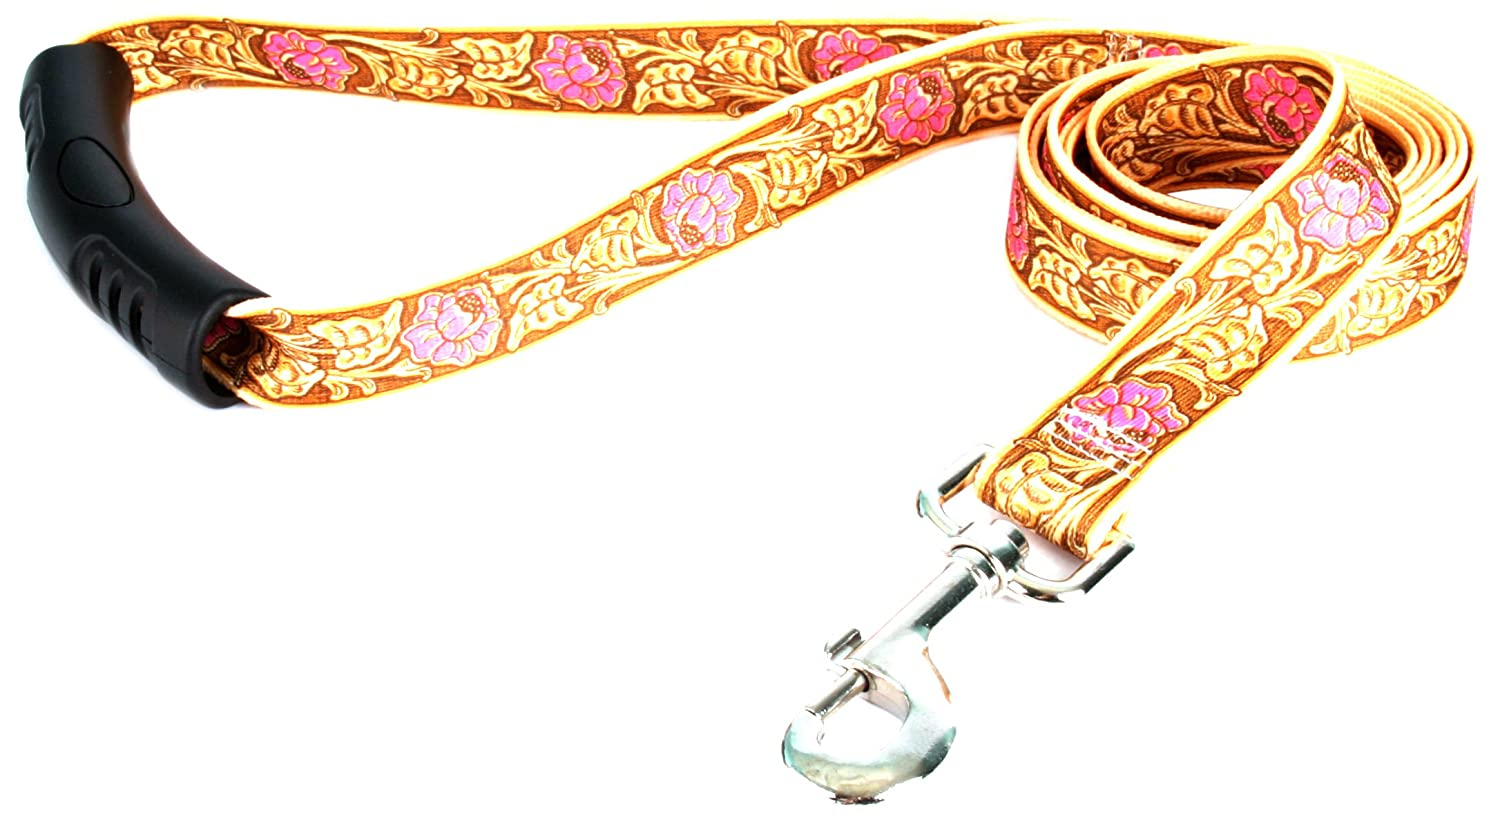 M Yellow Dog Design EZ-Grip Lead, 3 4-Inch by 60-Inch, Leather pink Pink